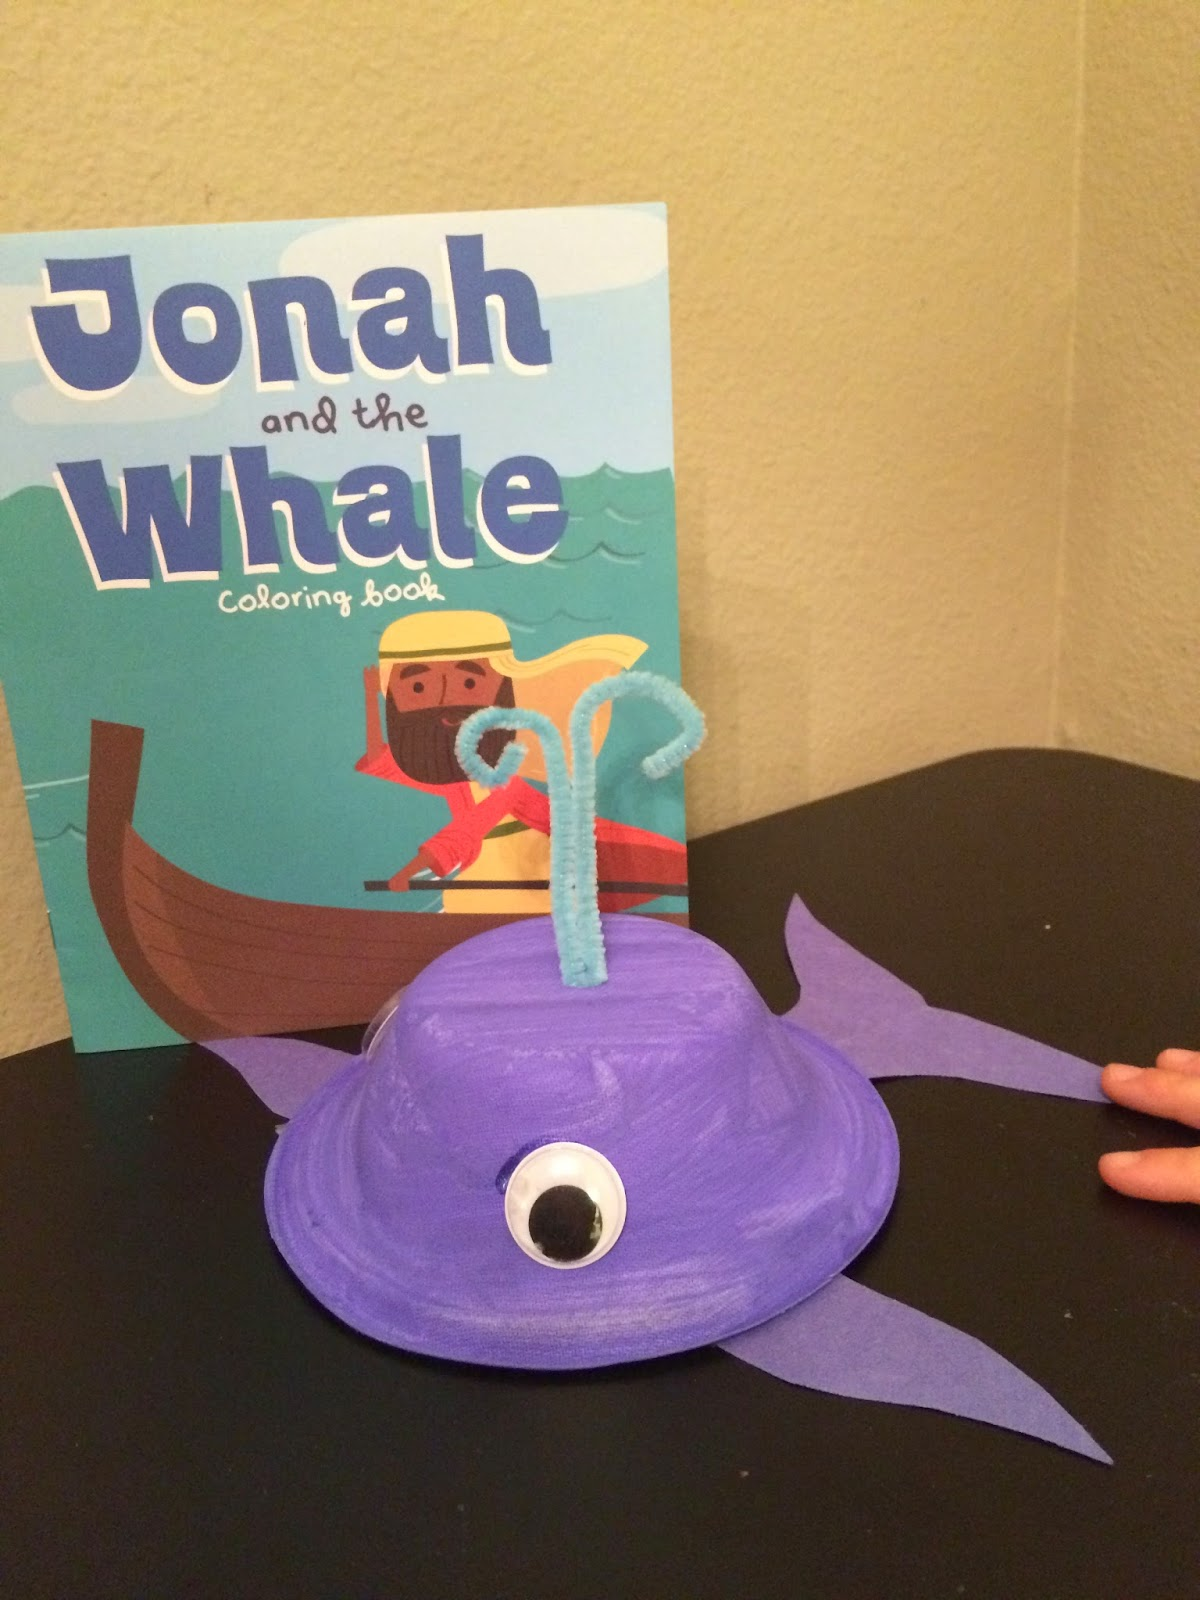 Carol Brooke Children S Book Author Amp Illustrator Mother Goose Time Jonah And The Whale